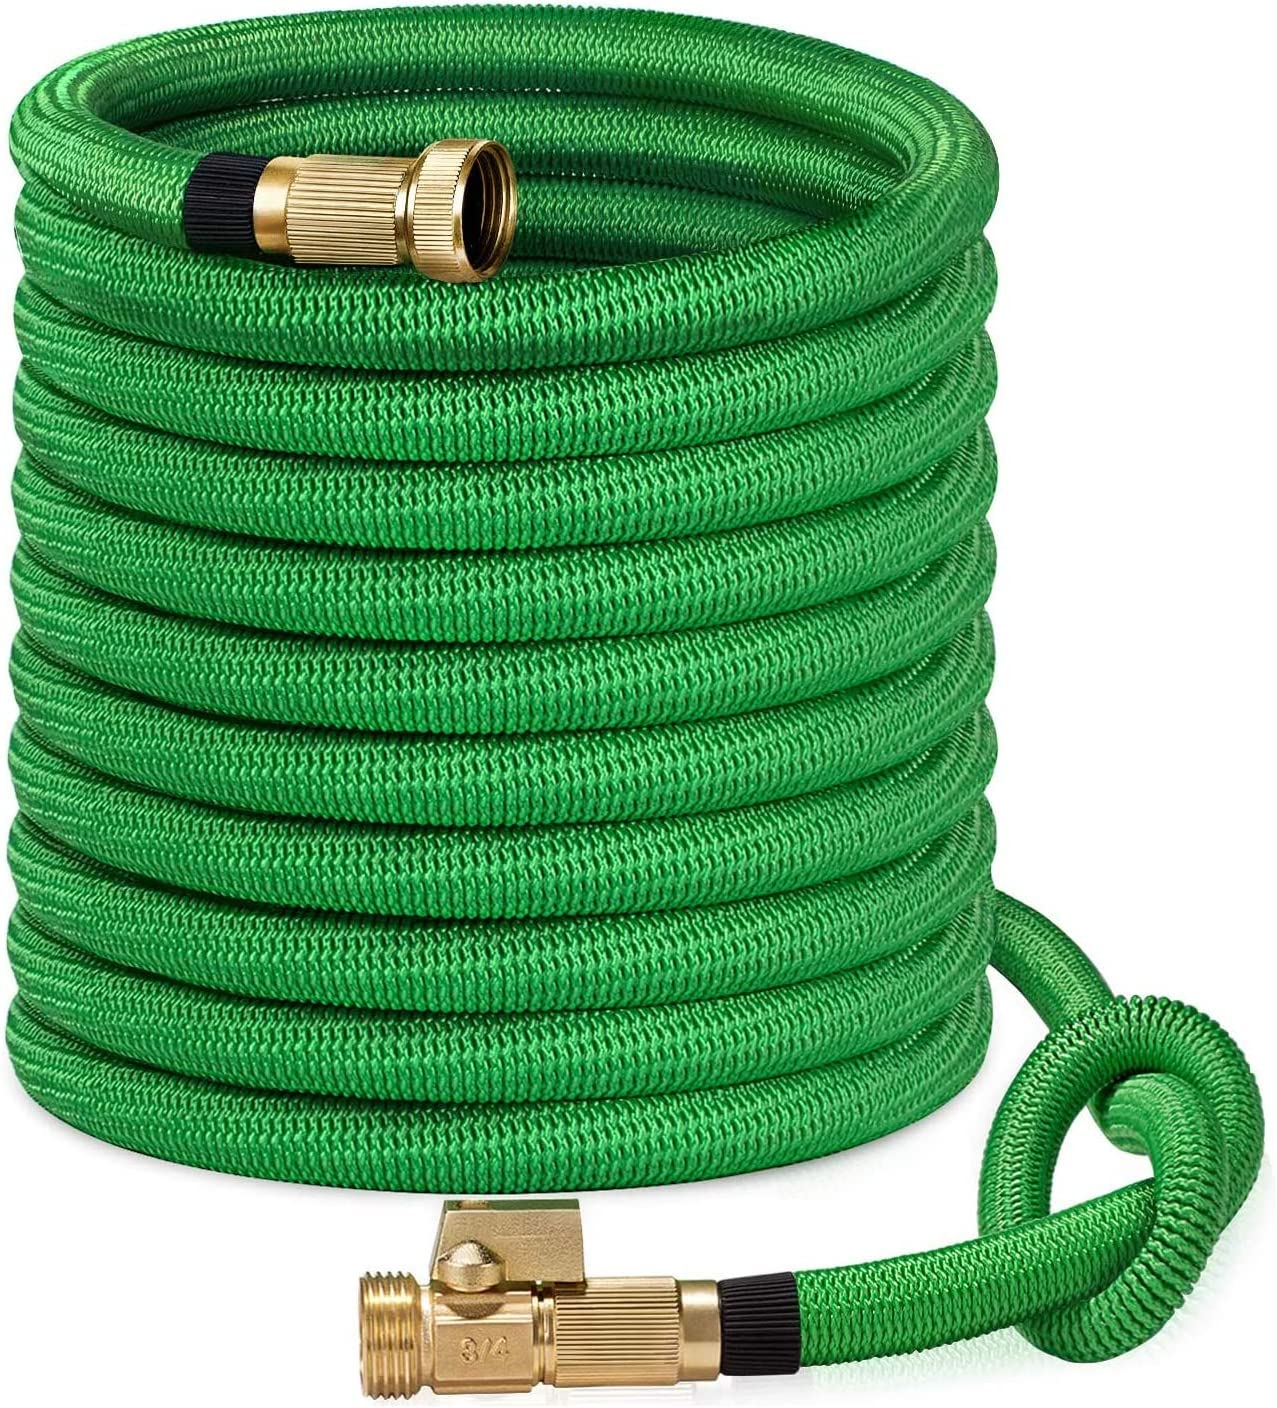 SunGreen 50ft Garden Hose, All New 2019 Expandable Water Hose with 3/4